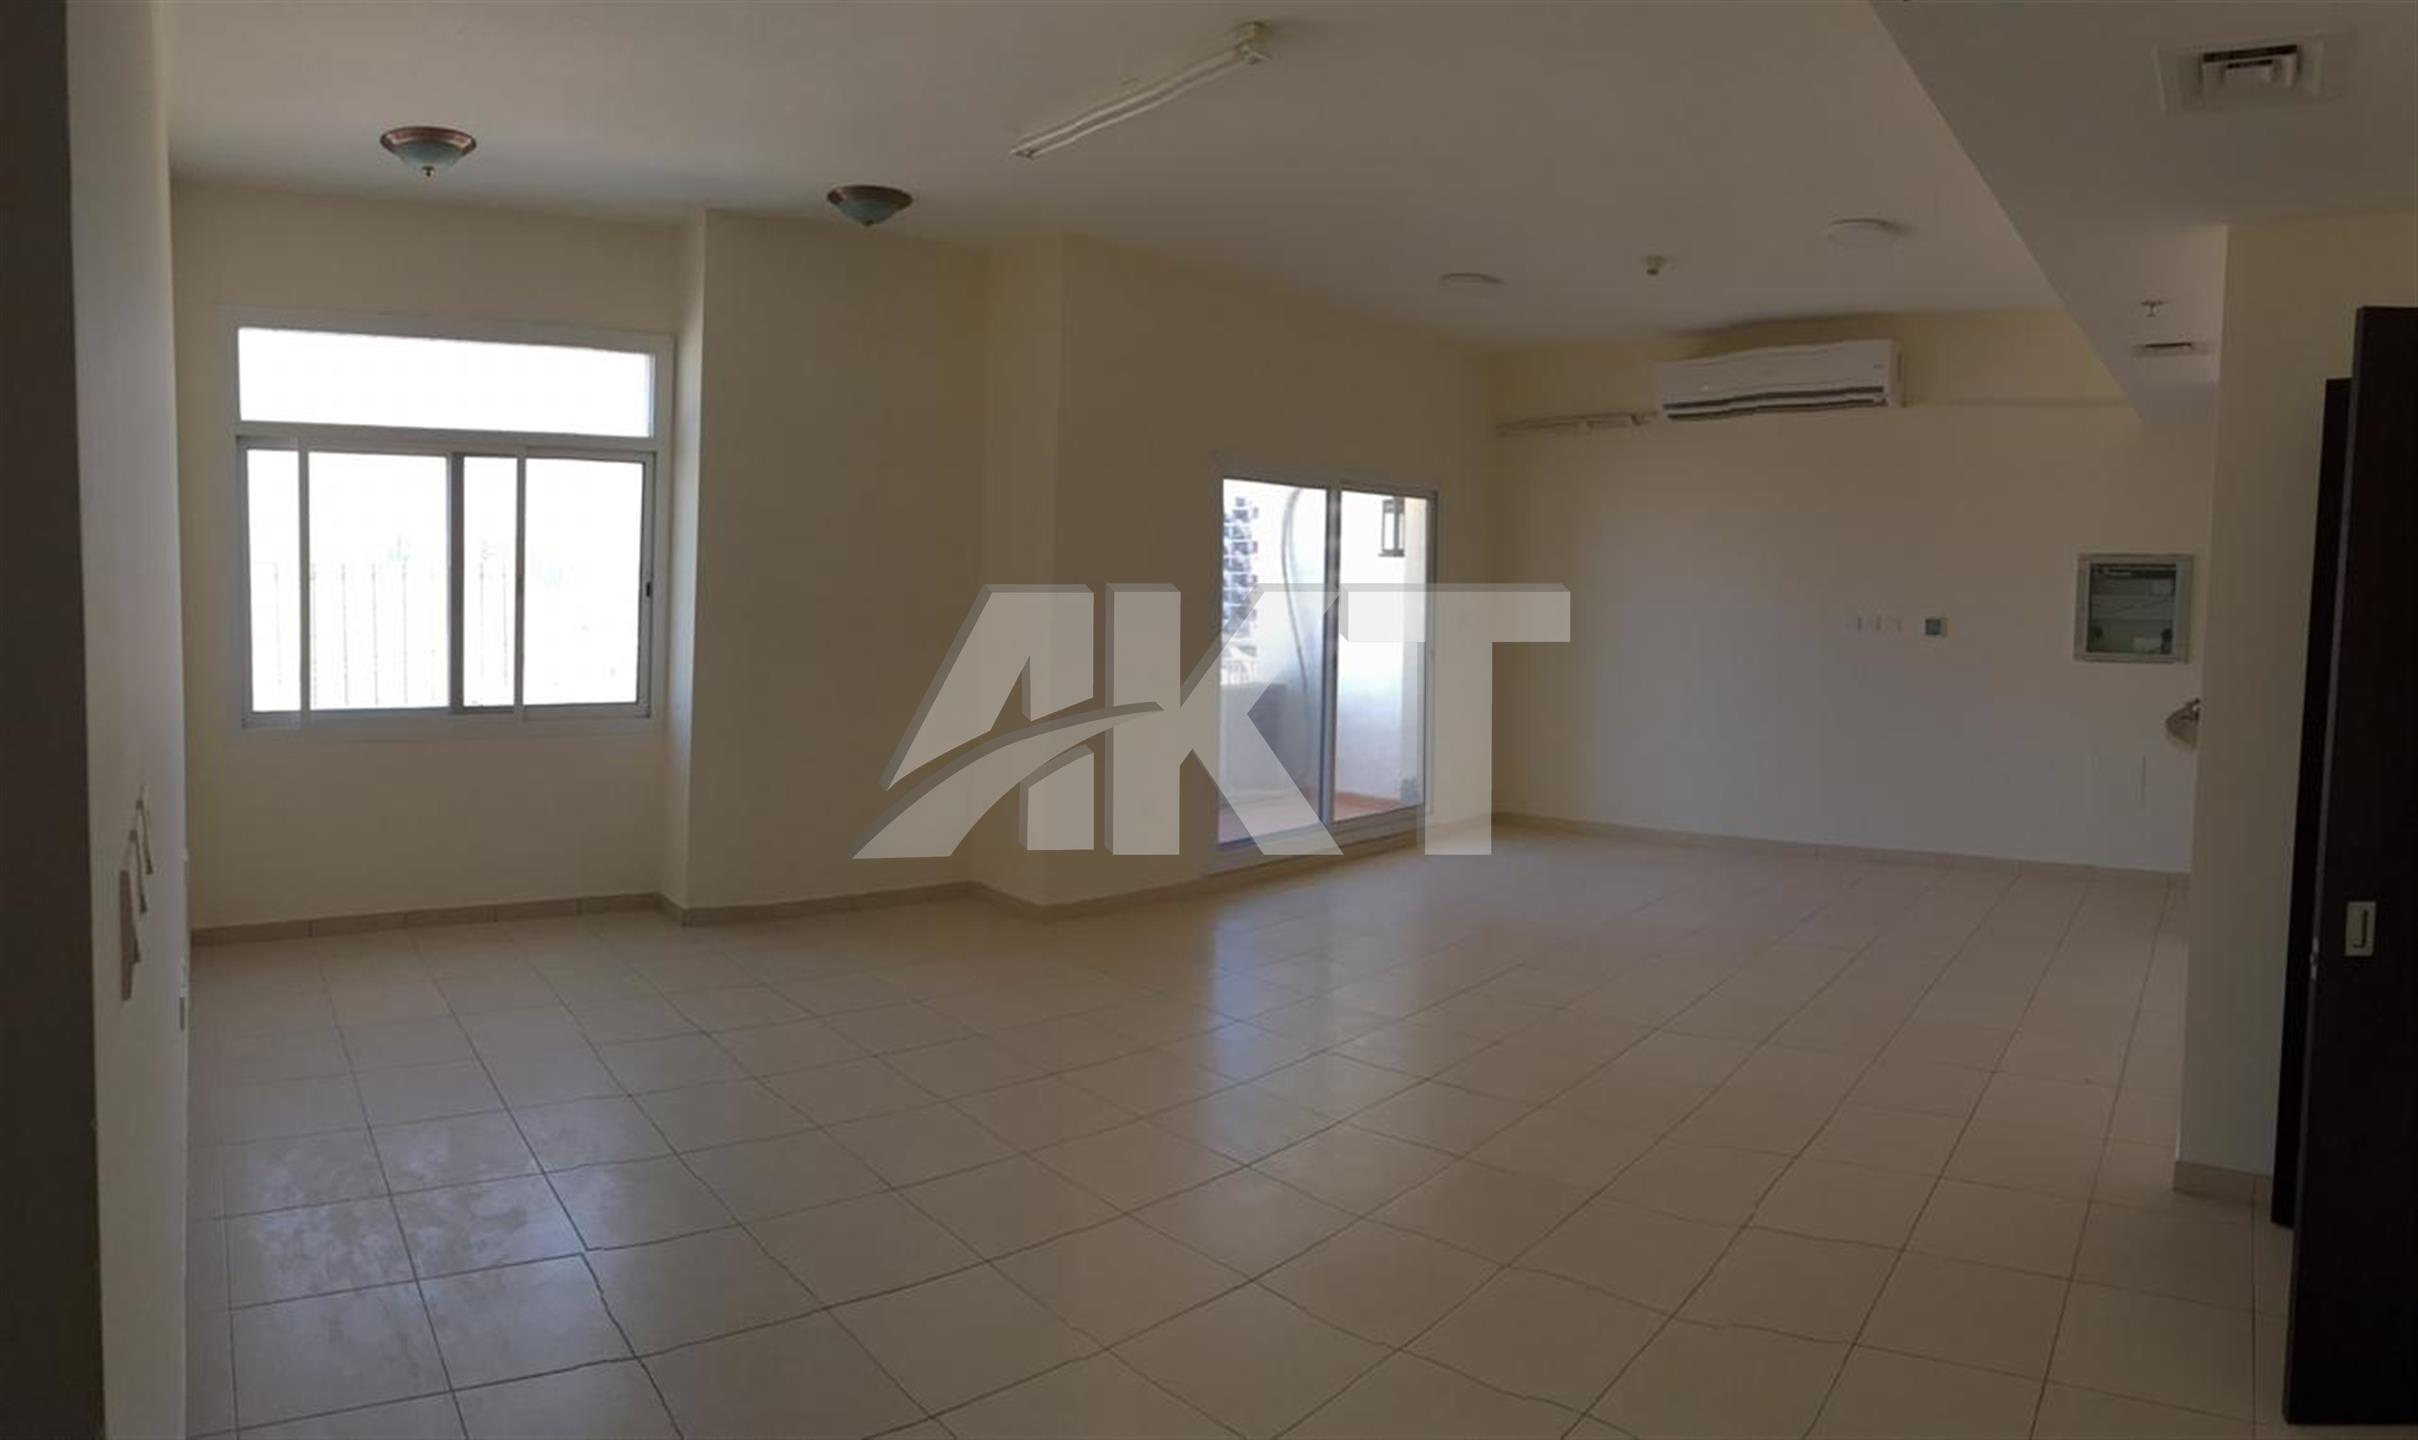 55 K / high floor / 3 Br / Nice Lay out / Direct Access to Emirates Road